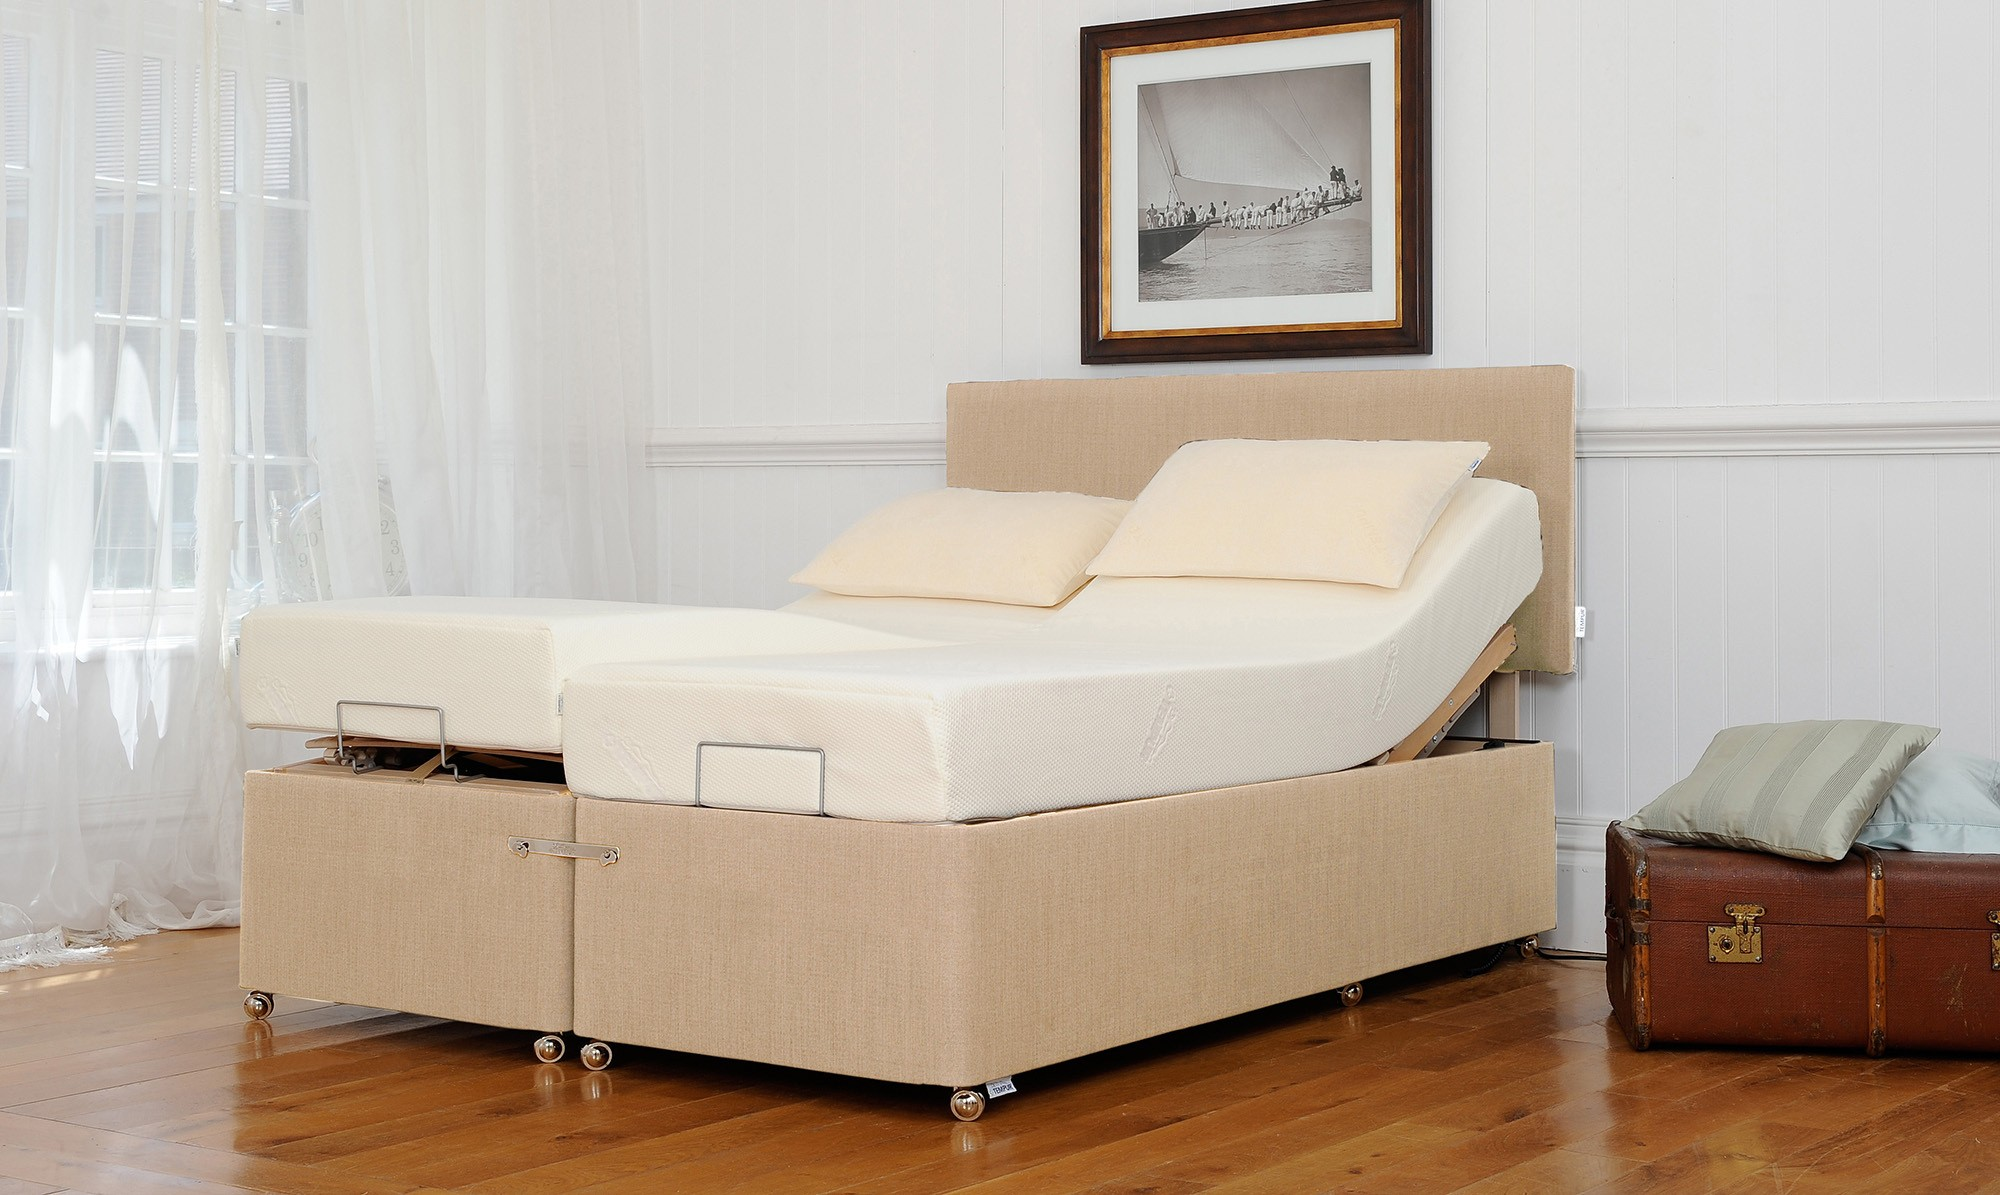 Tempur adjustable bed